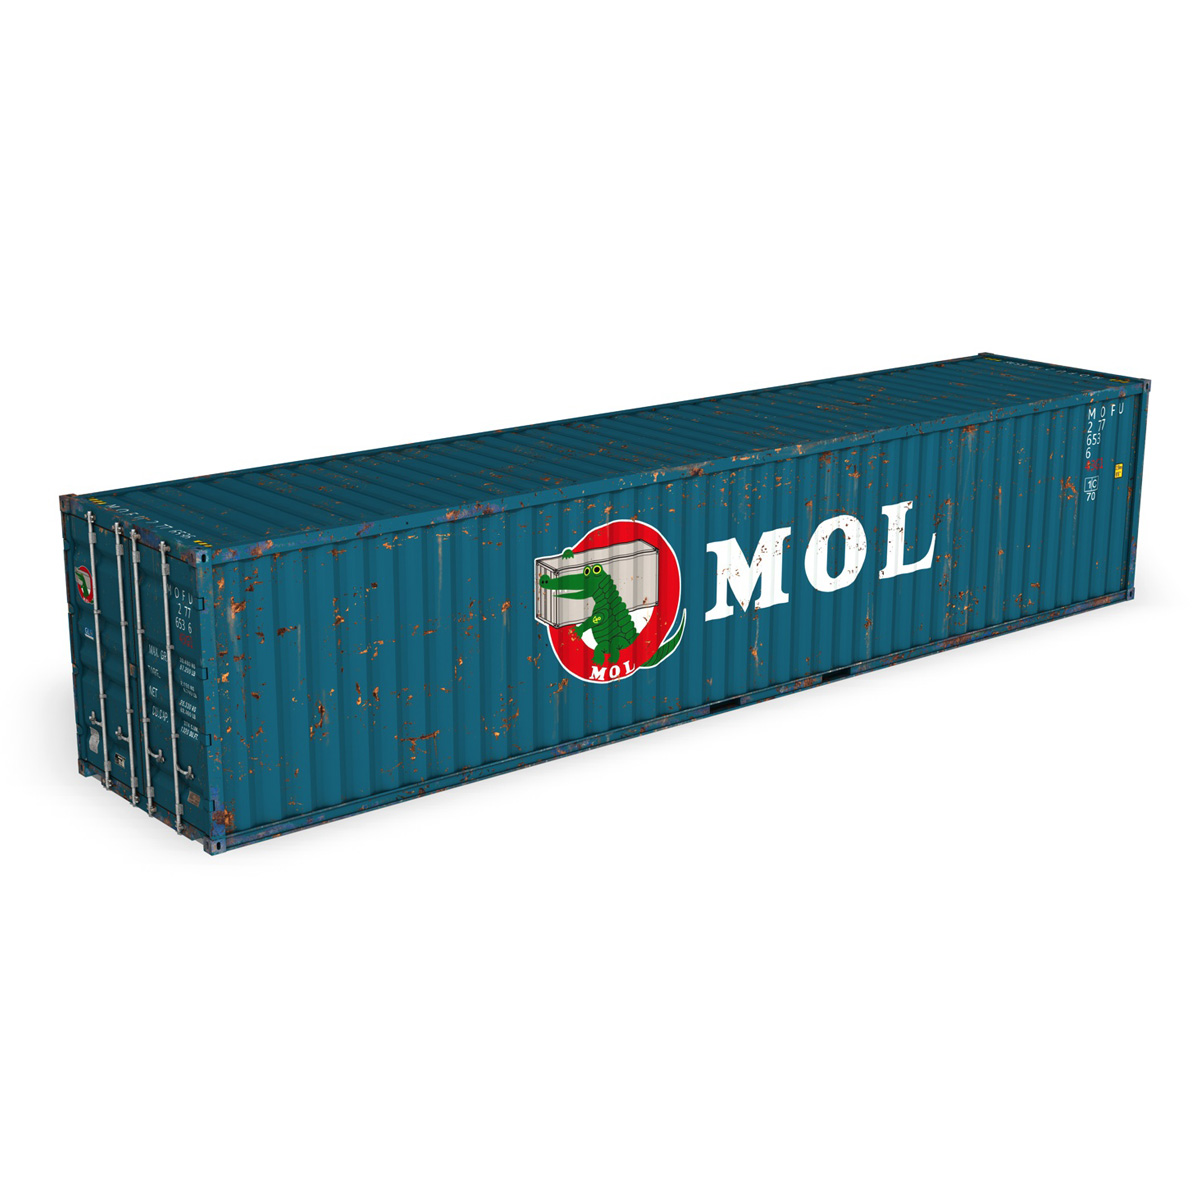 40ft shipping container – mol 3d model 3ds fbx lwo lw lws obj c4d 265135